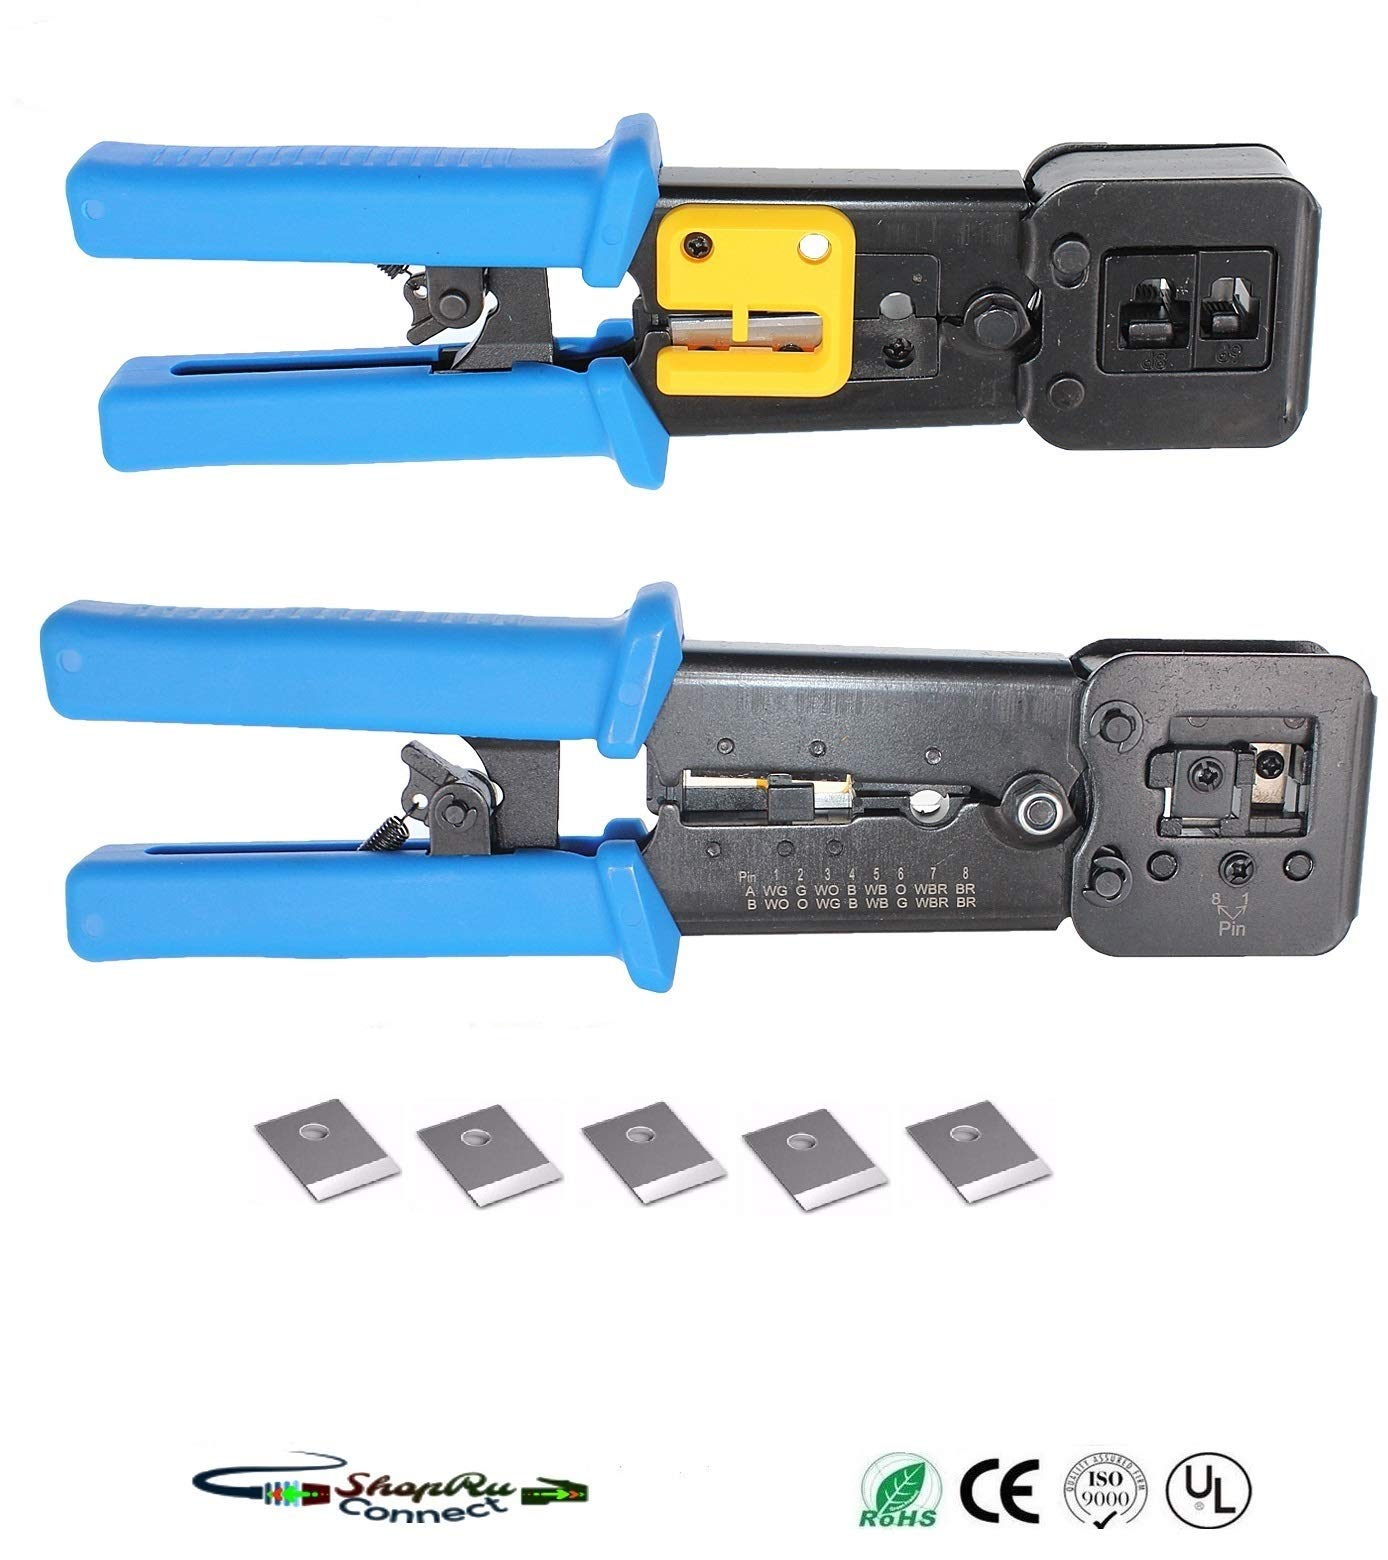 RJ45 Professional Heavy Duty Crimp Tool by ShopRu Connect for Pass Through Internet Network Connector (8 Pin Cavity Blade Replacement Combo Pack)